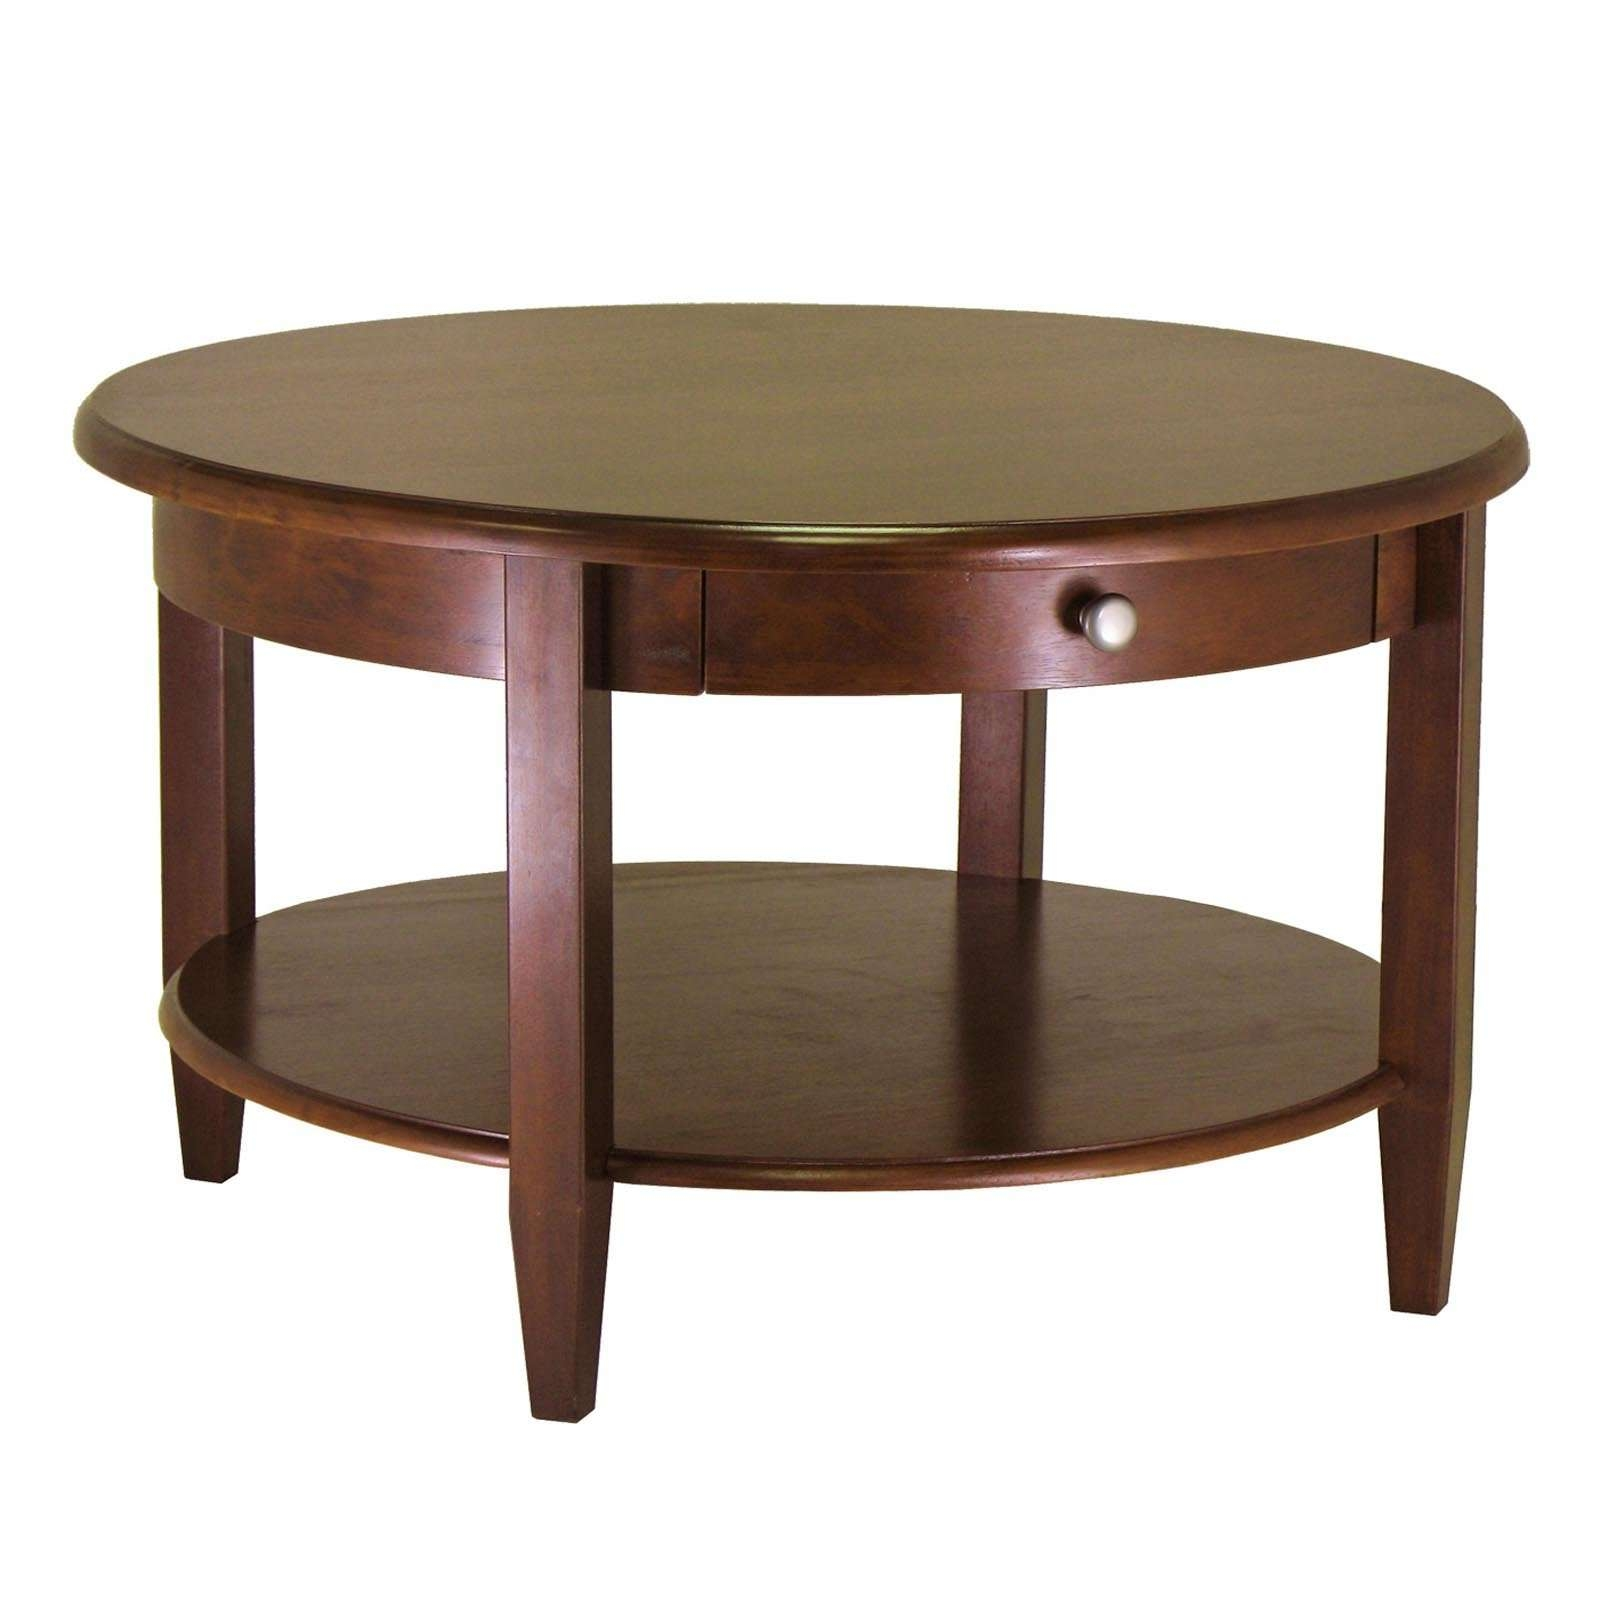 Favorite Small Round Coffee Tables In Coffee Tables : Small Round Coffee Table Tables Design Wood (View 9 of 20)